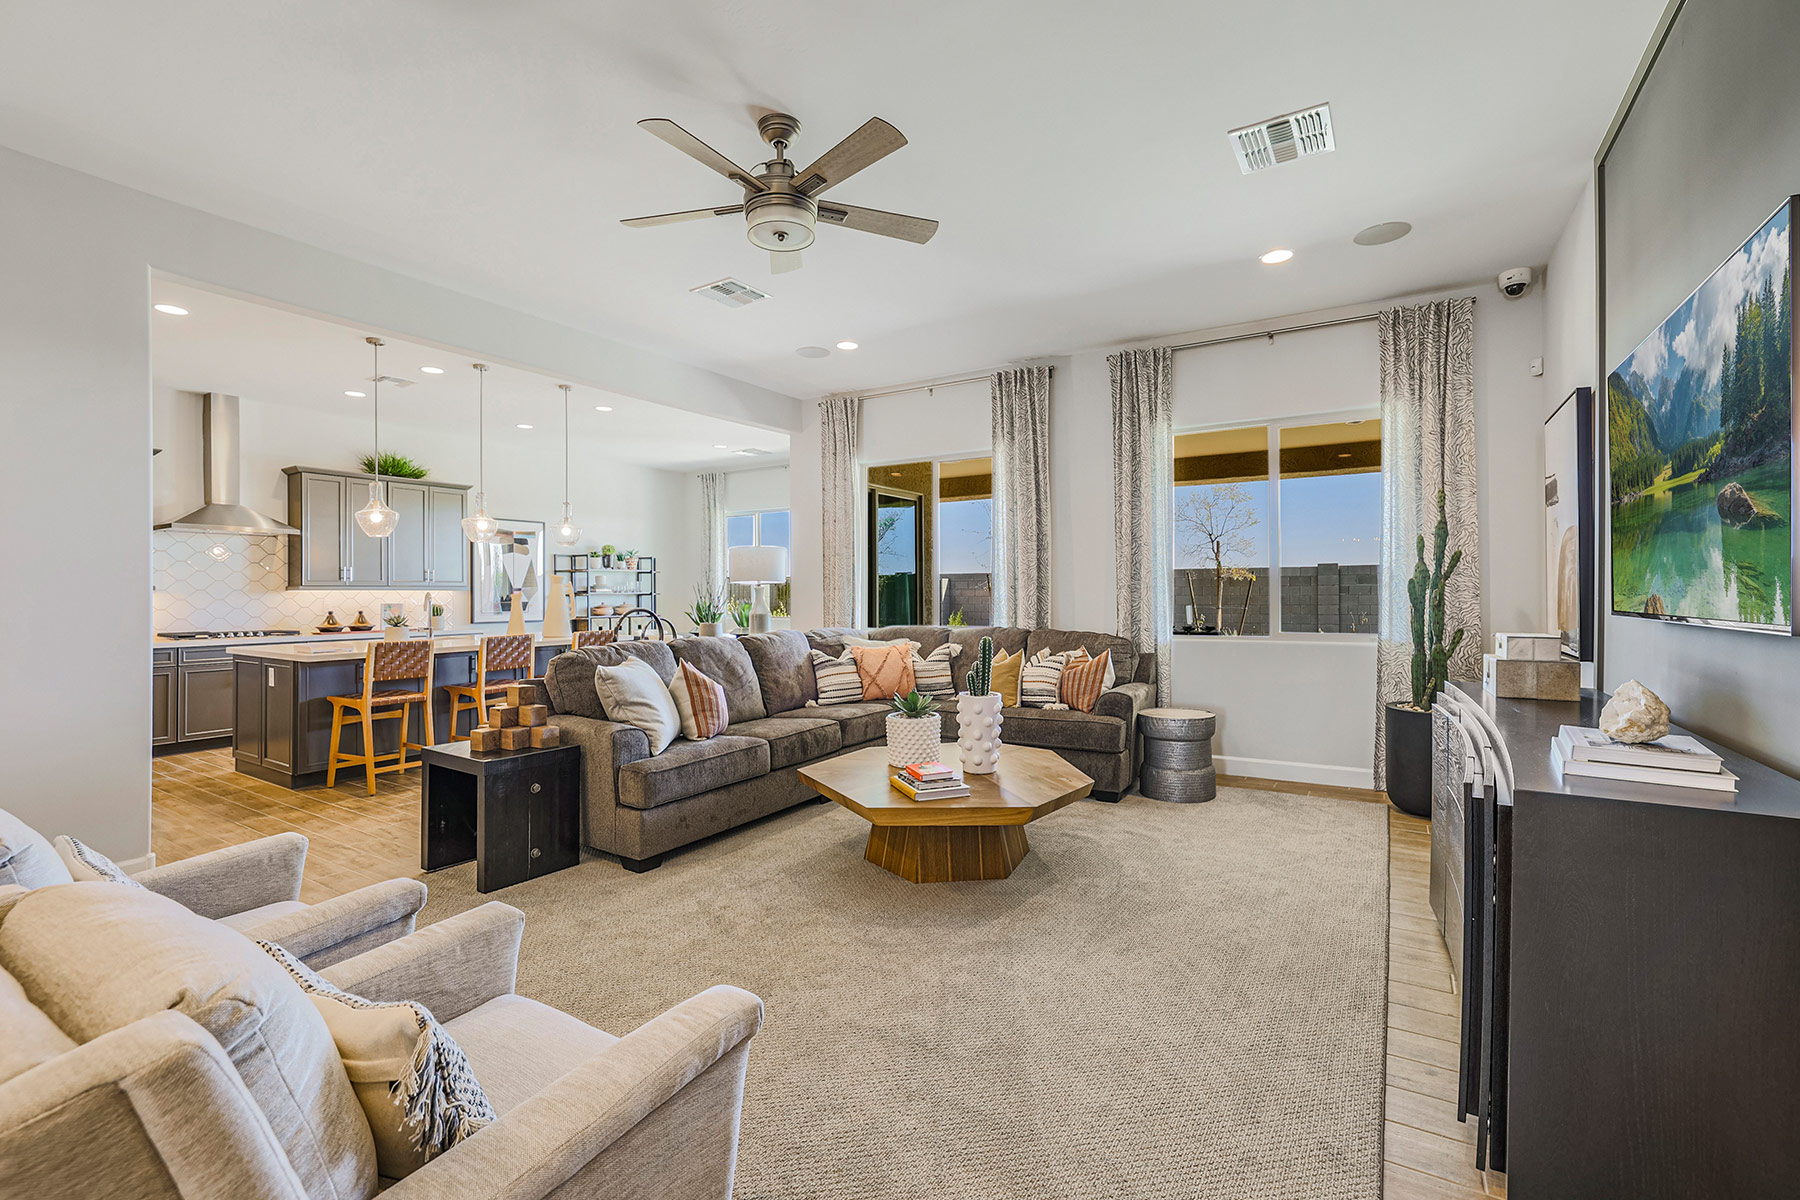 Castleton Plan Greatroom at Azure Canyon in Litchfield Park Arizona by Mattamy Homes